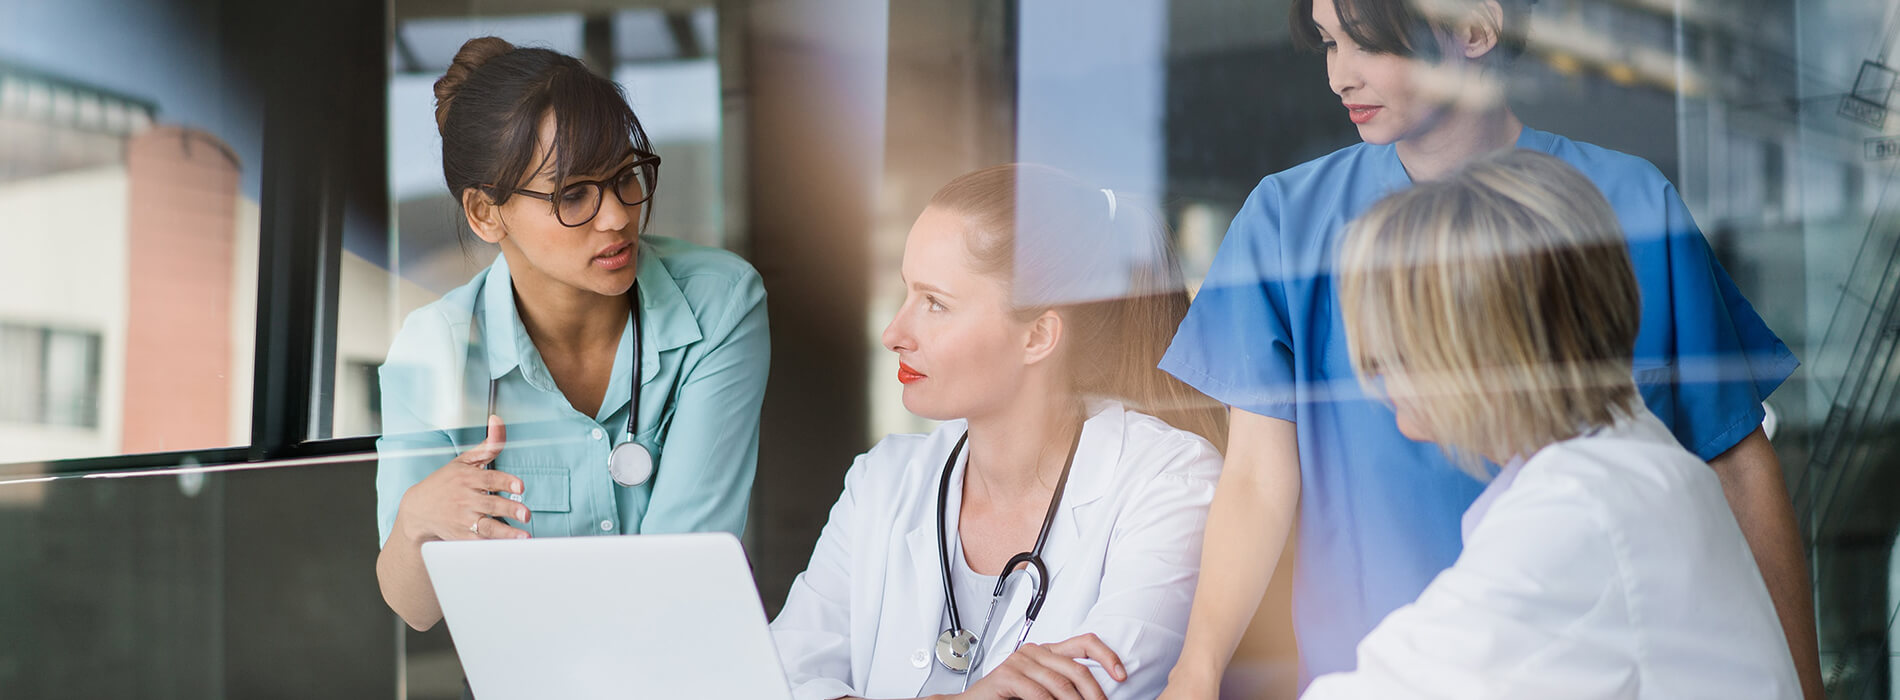 Enhance Healthcare Services with Experienced Medical Translators